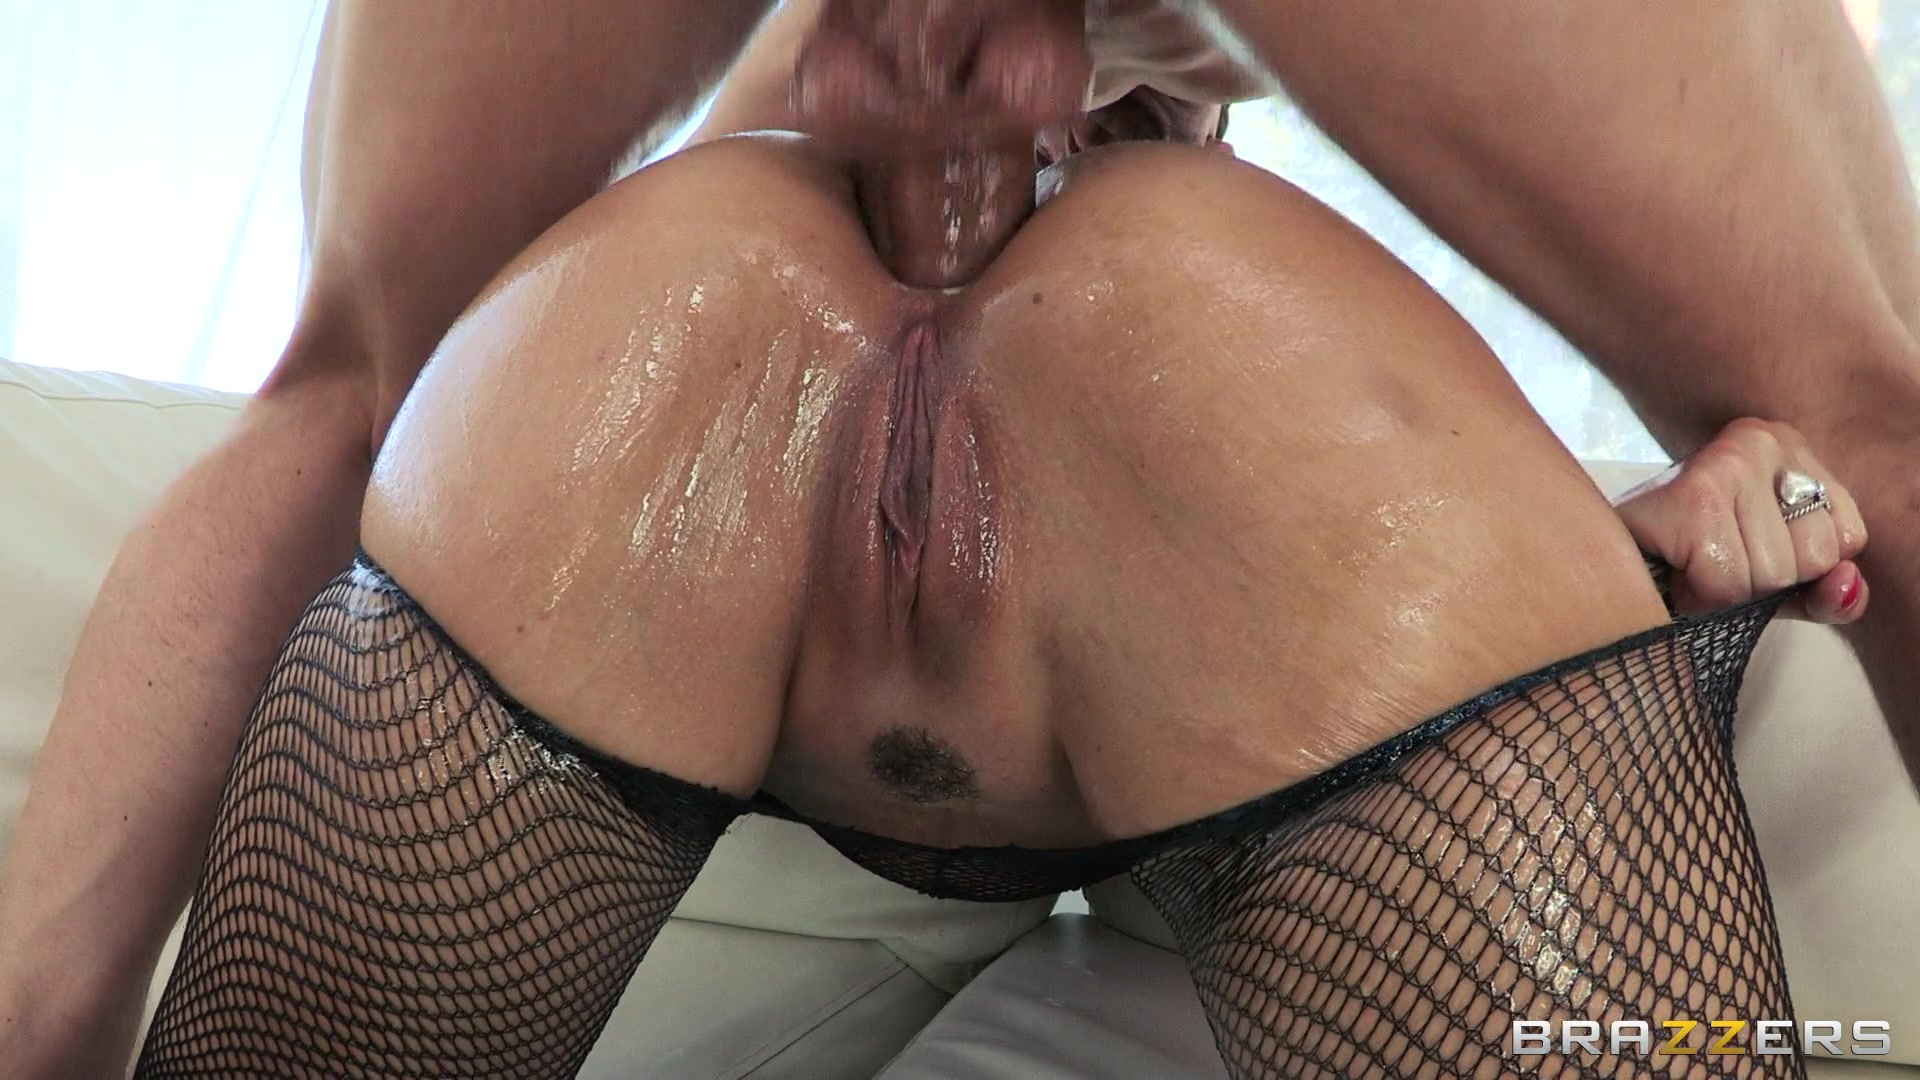 Brazzers Big Wet Butts Brittany Andrews Full Moon Free HQ Sex Galery, Free Teen Porn Galery, Free Teen Sex Photo